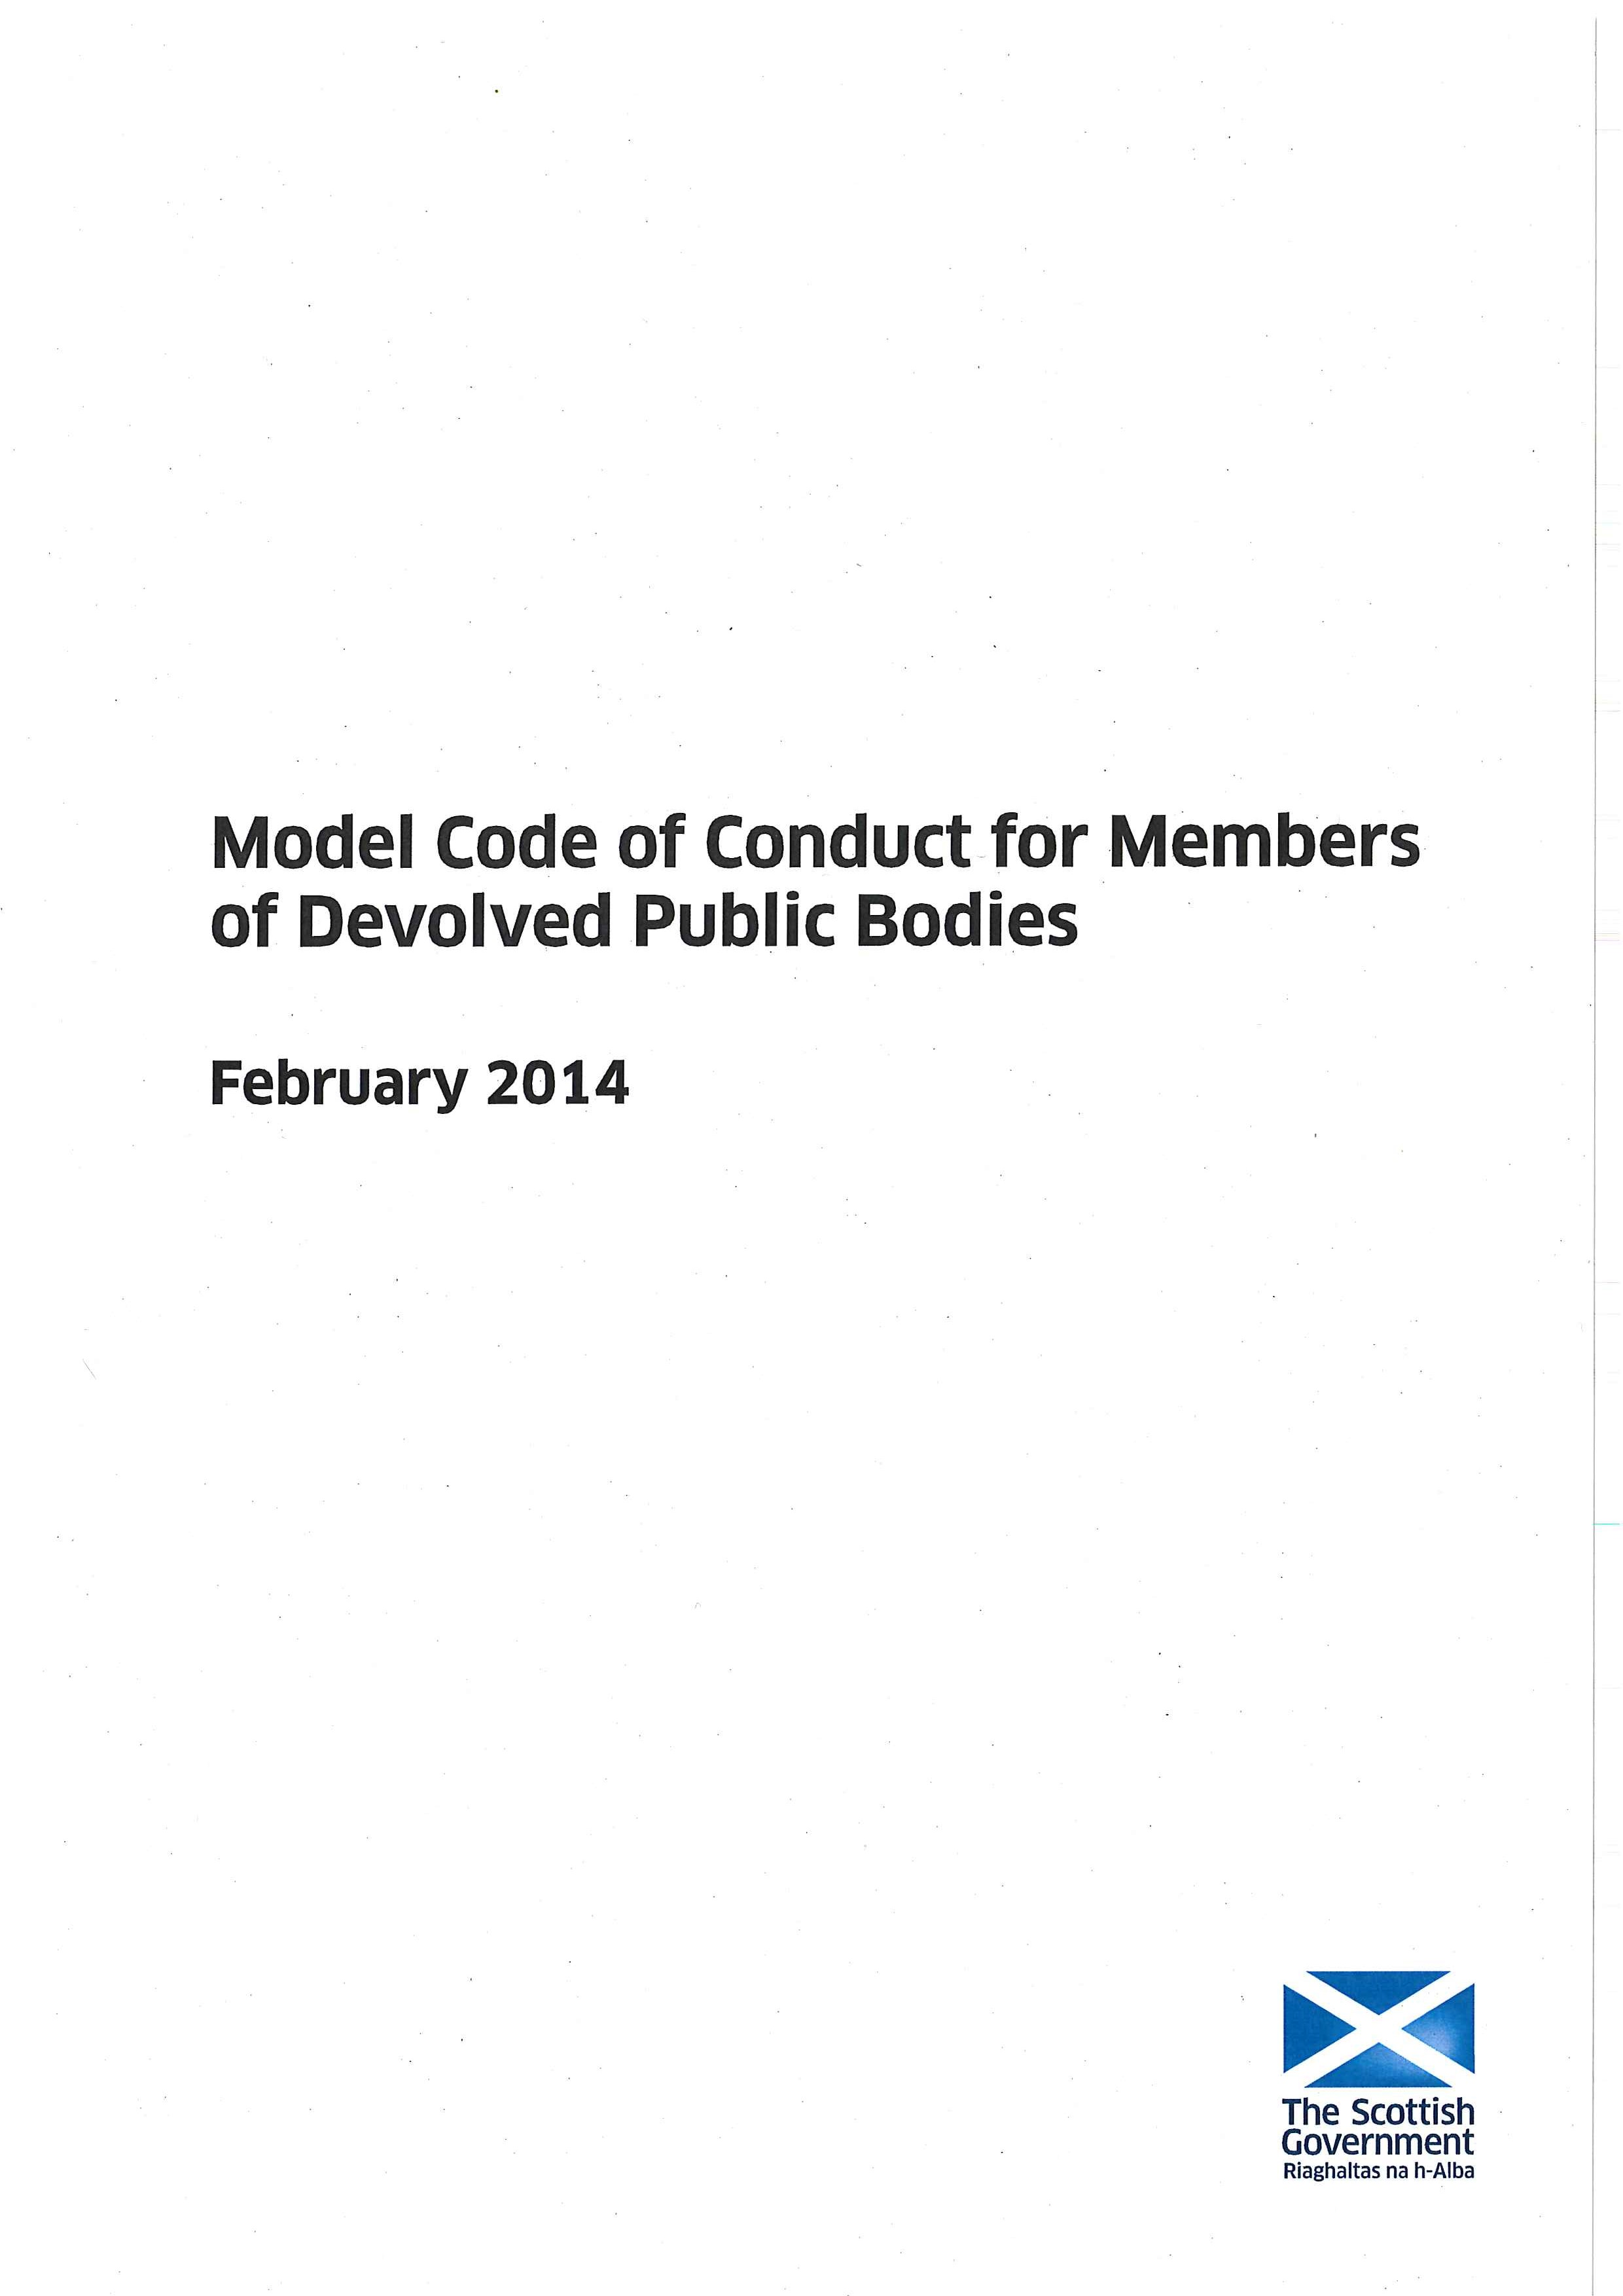 Model Code of Conduct for Members of Boards of Devolved Public Bodies (2014)